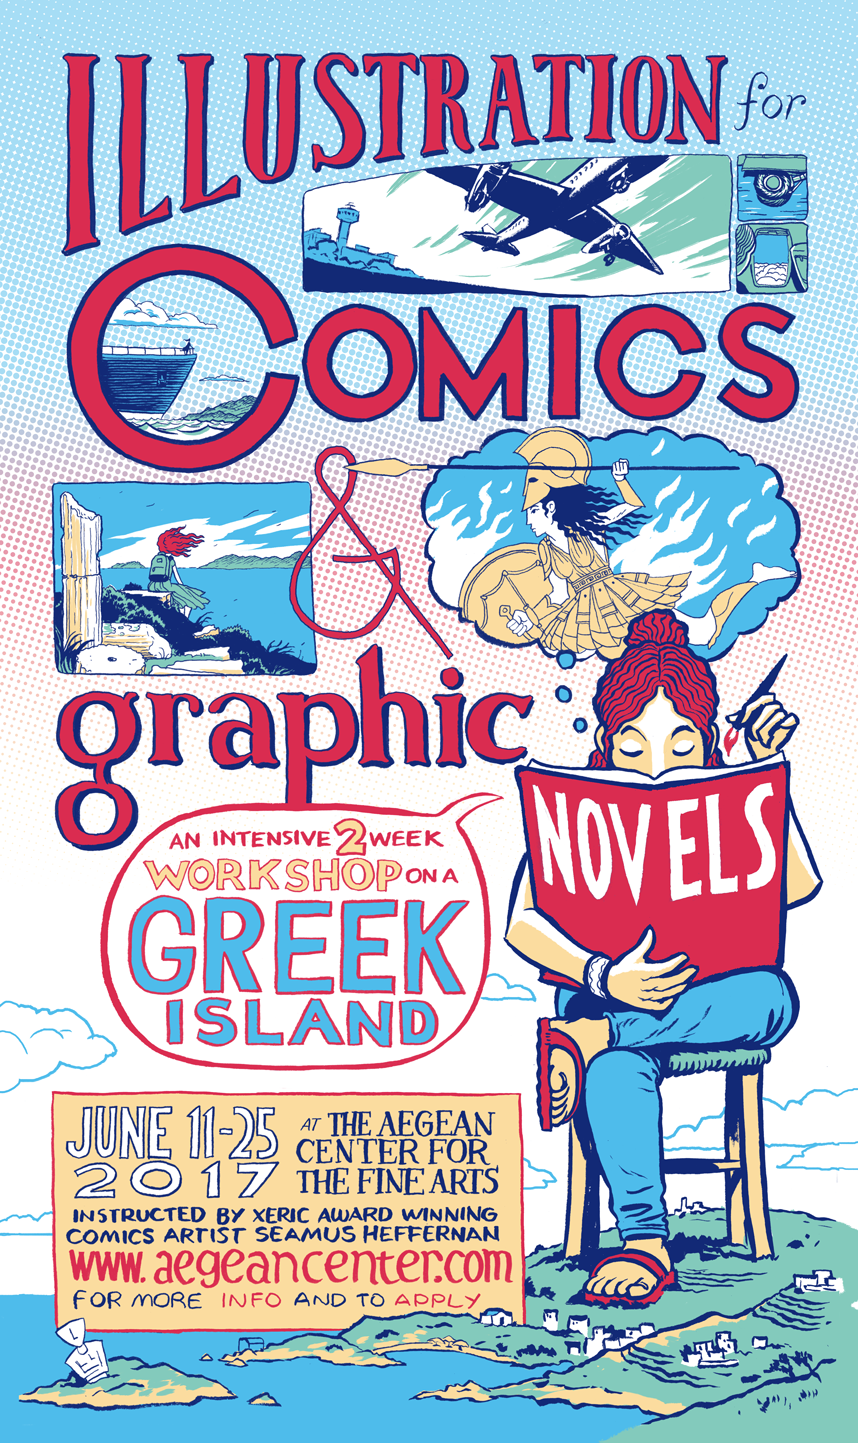 This summer I'lll be offering a  two week intensive Comics workshop on the island of Paros in Greece, via the Aegean Center for the Fine Arts . The Aegean Center has been providing fine arts education on the beautiful Cycladic Island since 1966, and provides an intimate, deeply inspirational and beautiful environment to approach the arts.